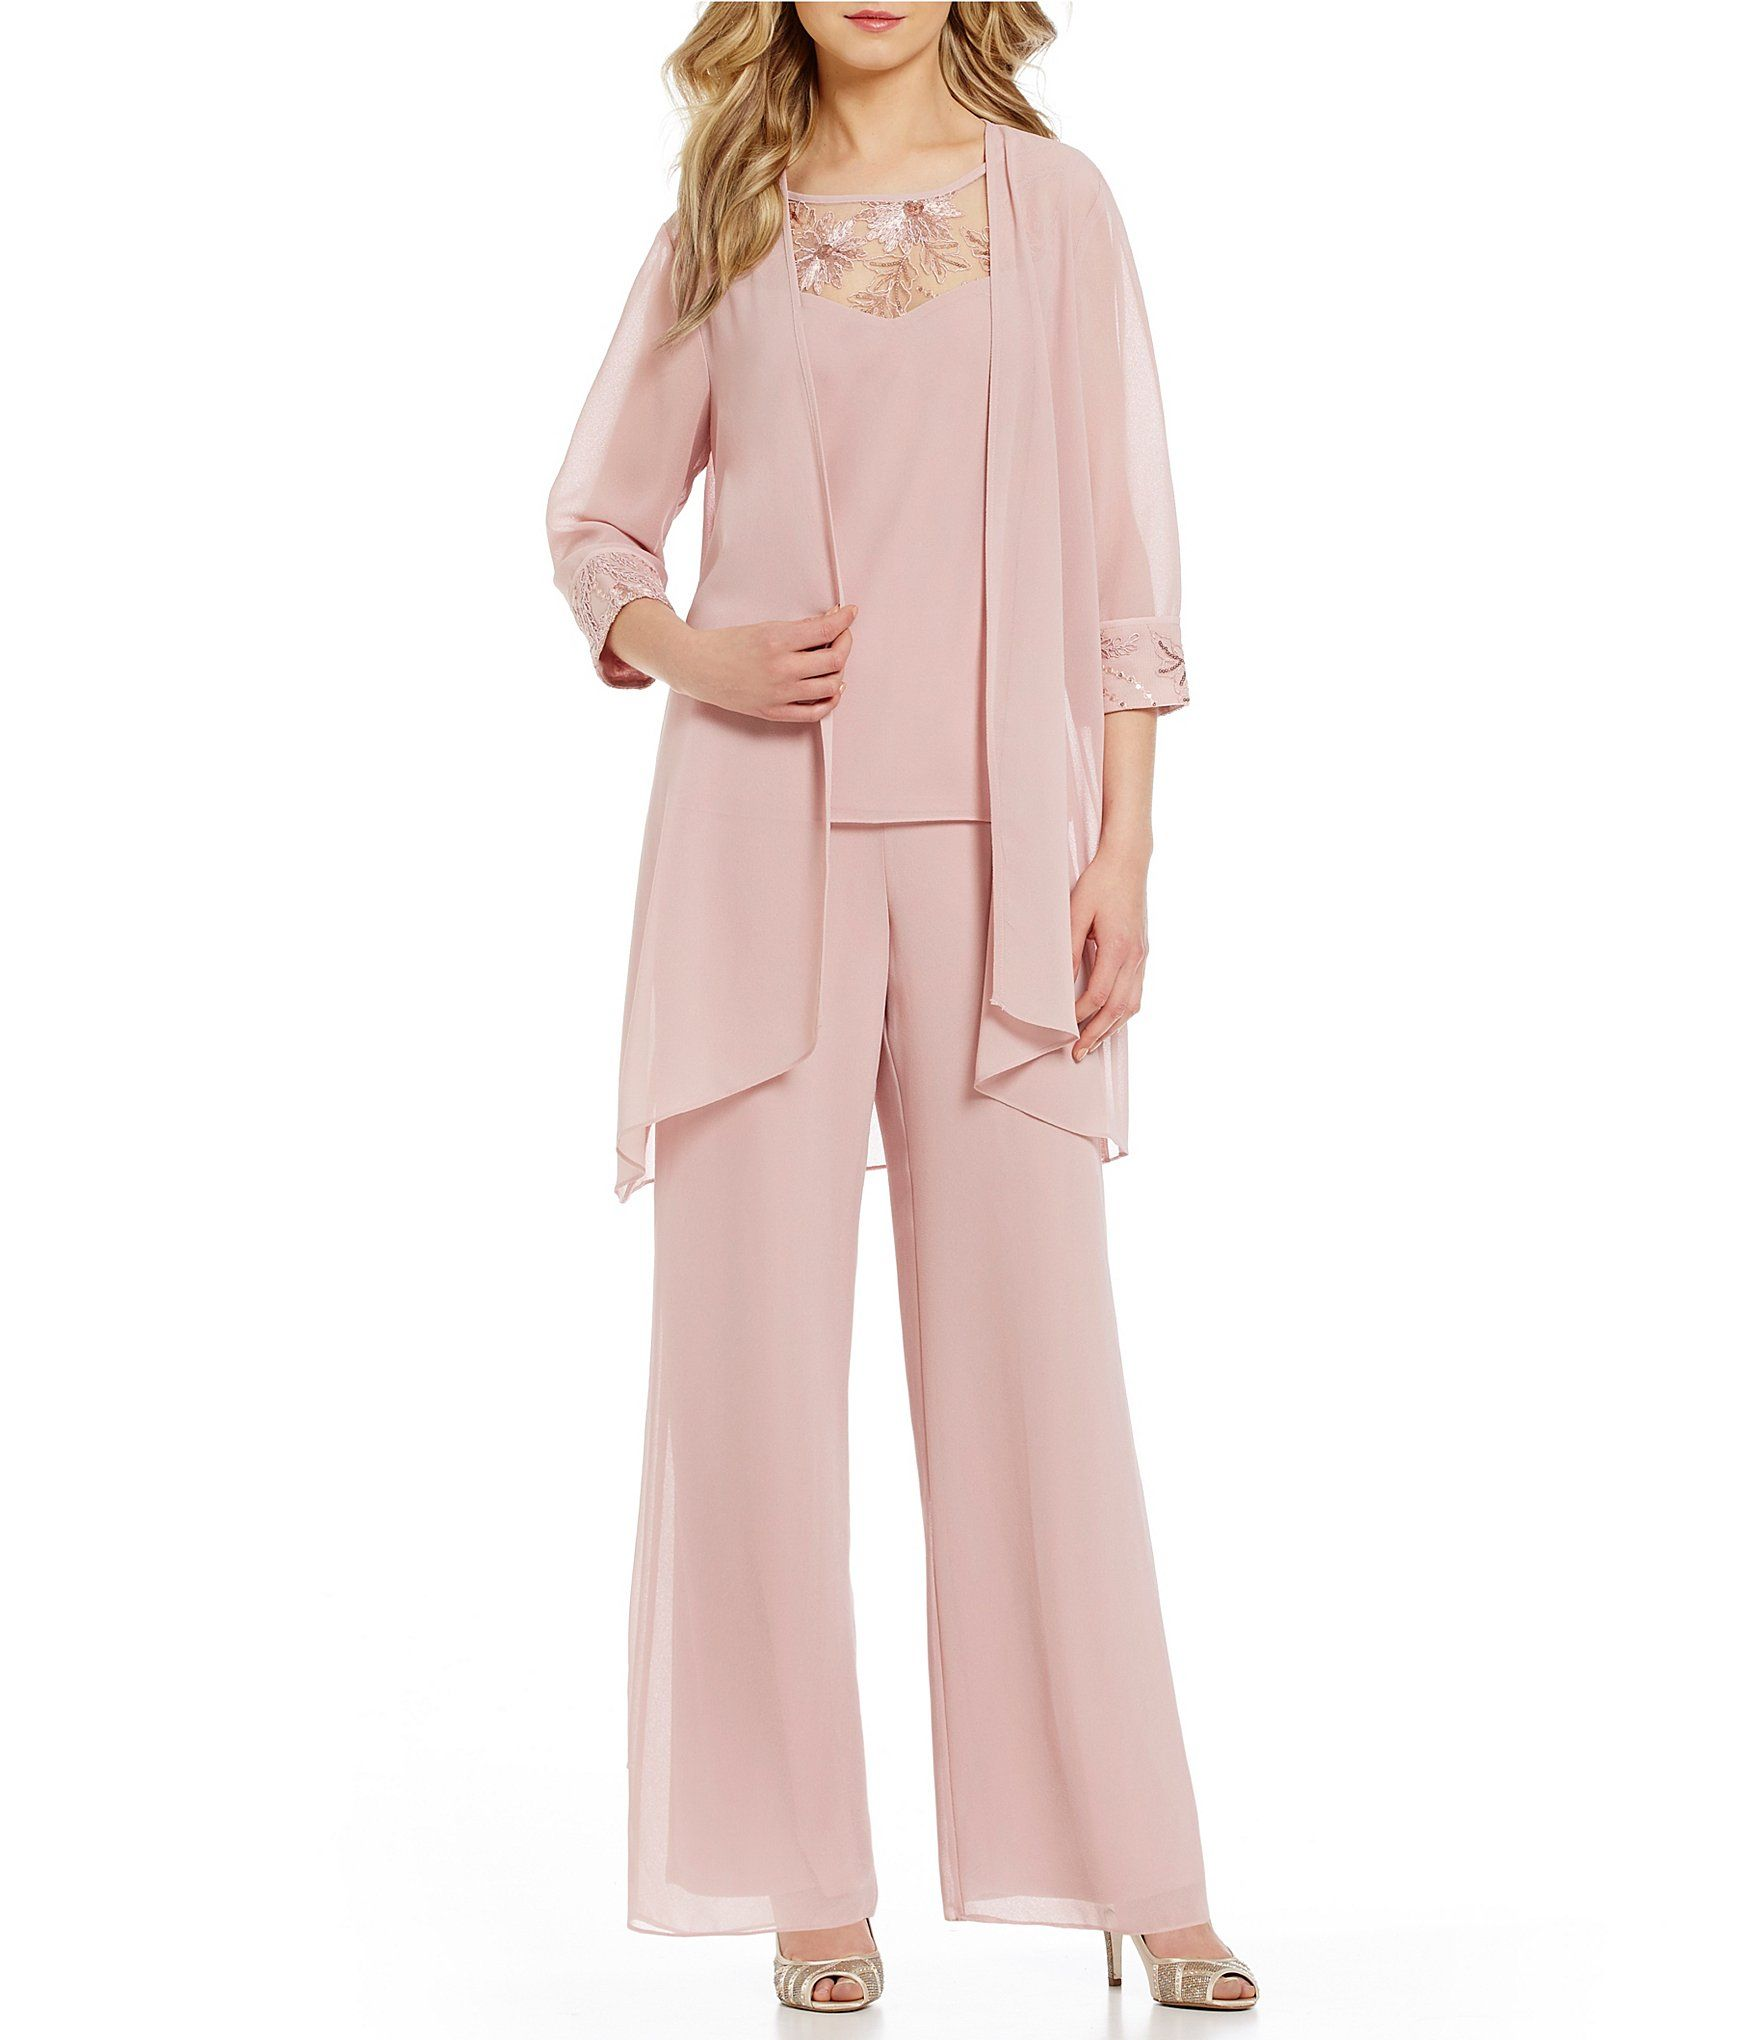 acceef3824 Shop for Le Bos Embroidered Chiffon 3-Piece Pant Set at Dillards.com.